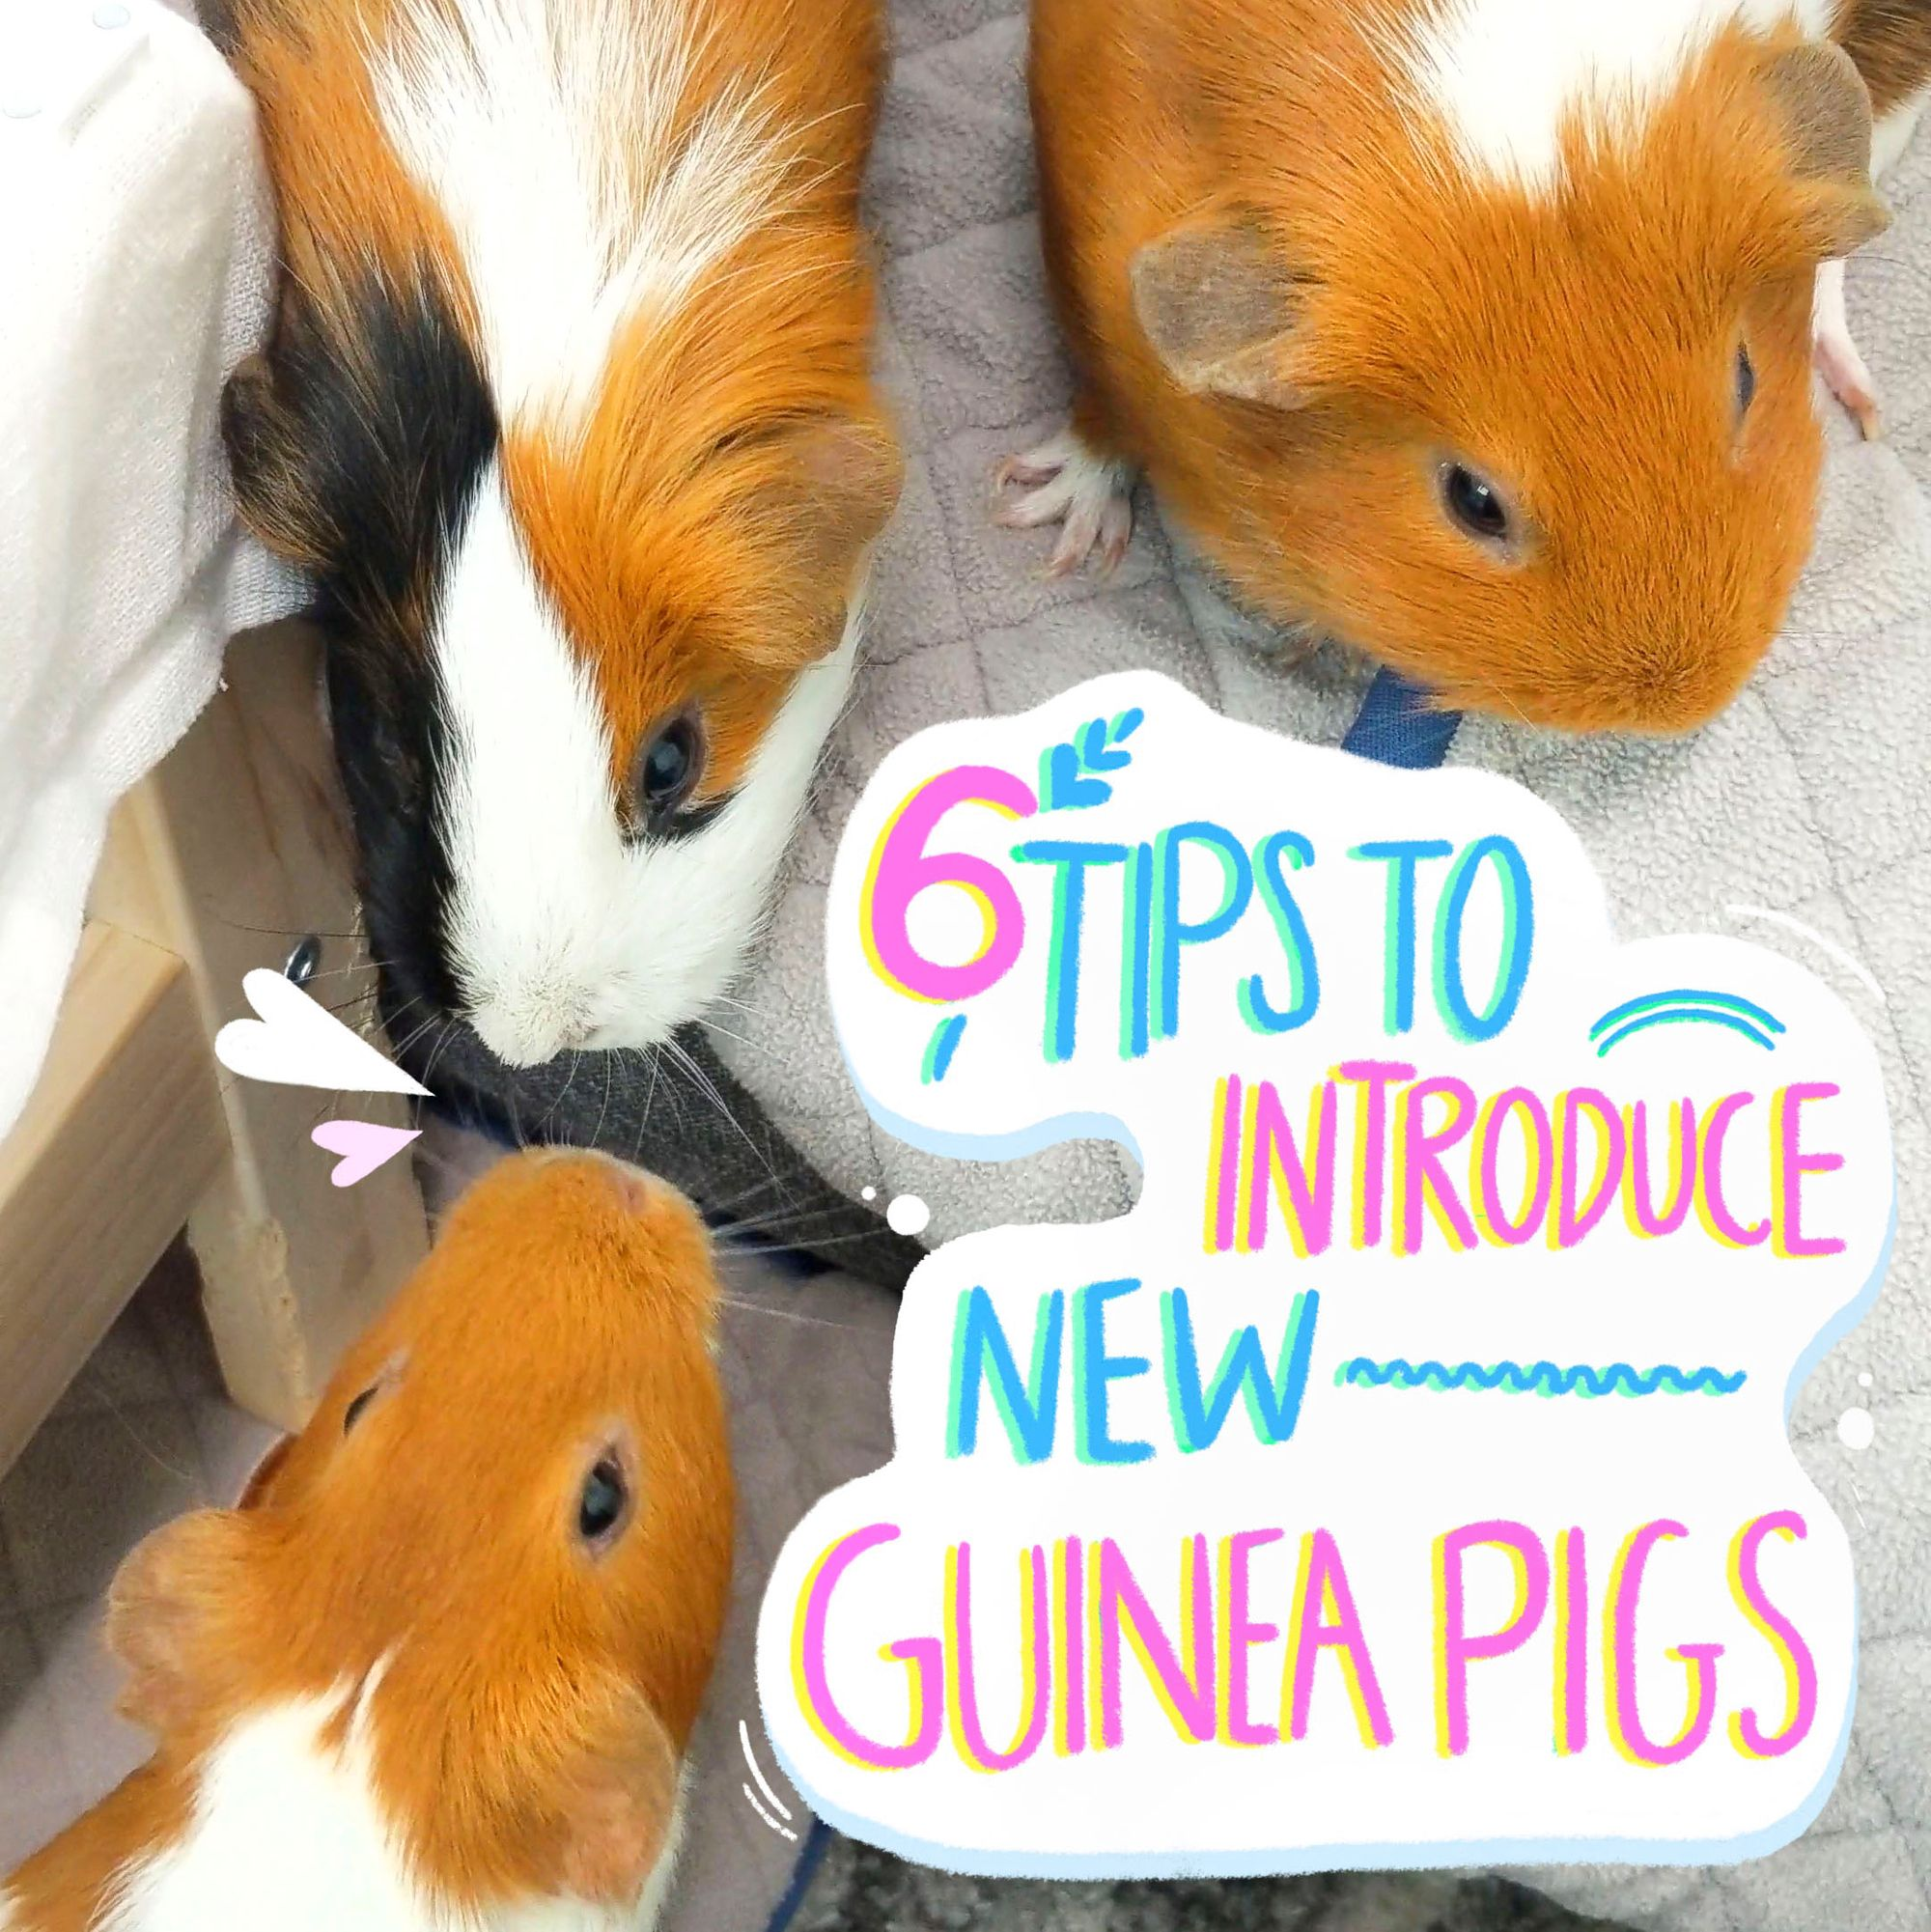 Pin On Guinea Pig Care Tips Guineadad